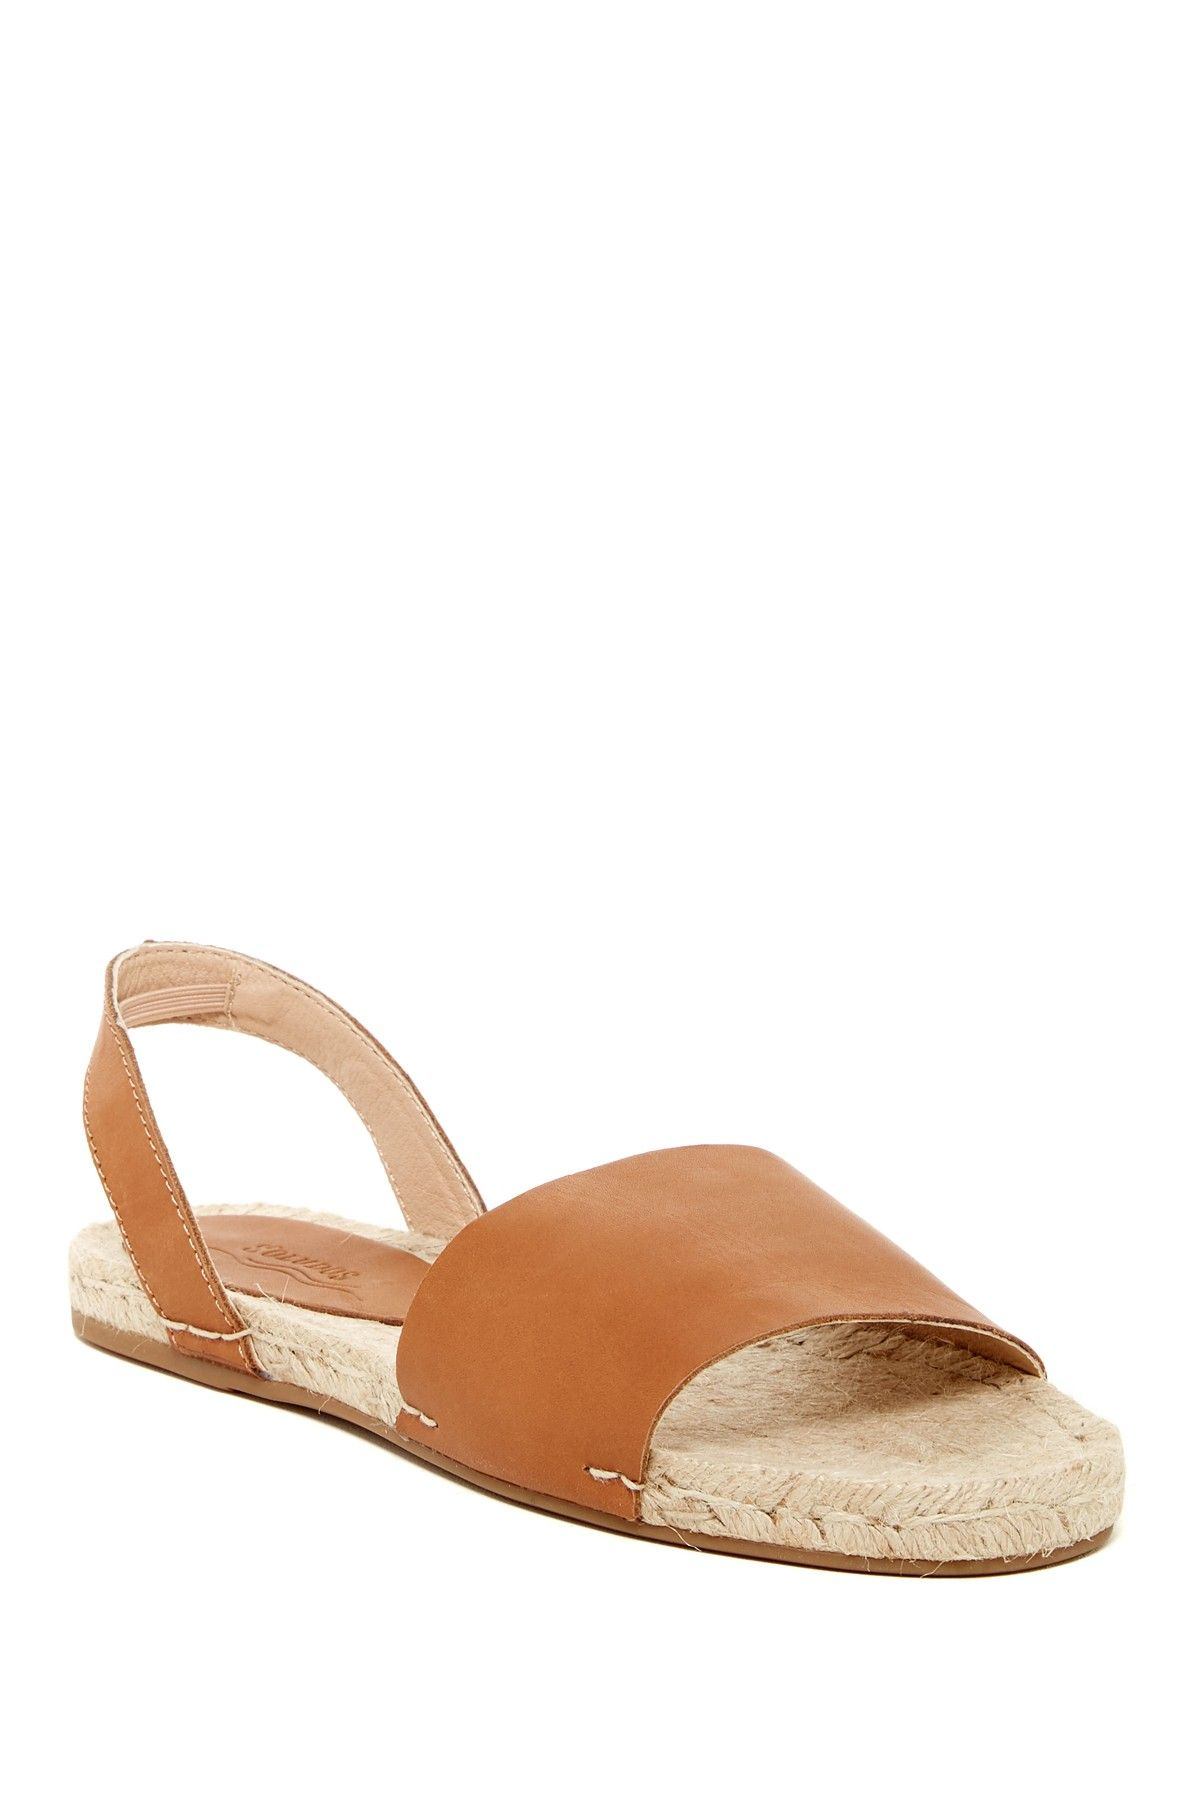 Crisscross Platform Sandal by Soludos on @nordstrom_rack